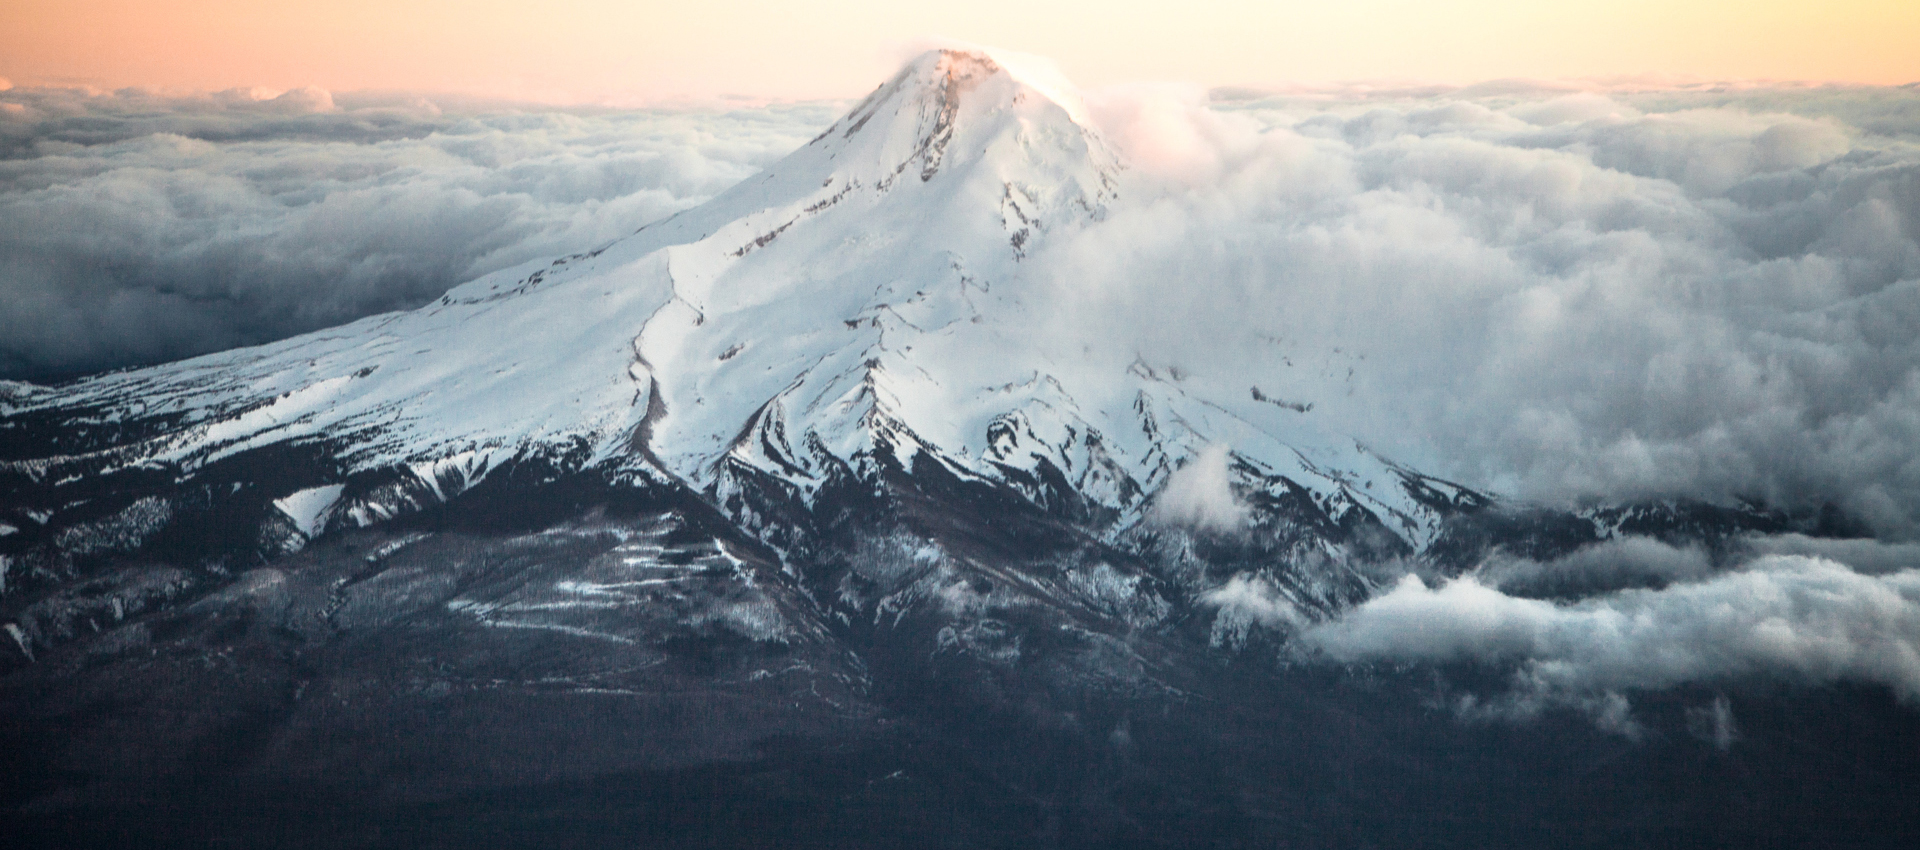 Mt. Hood with billowing clouds close to sunset